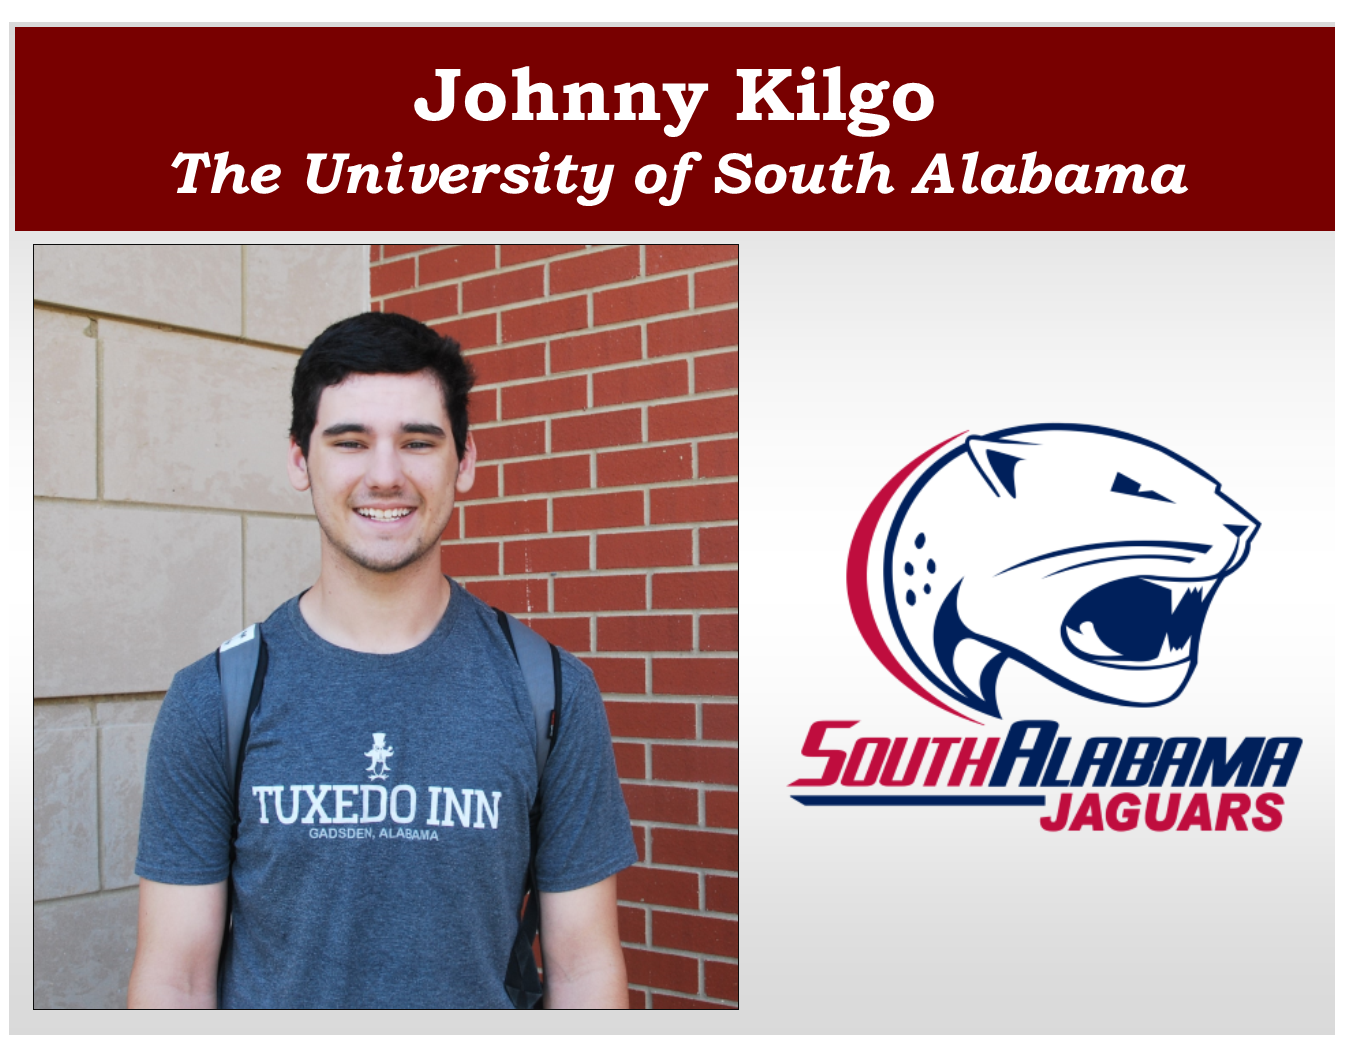 Johnny Kilgo